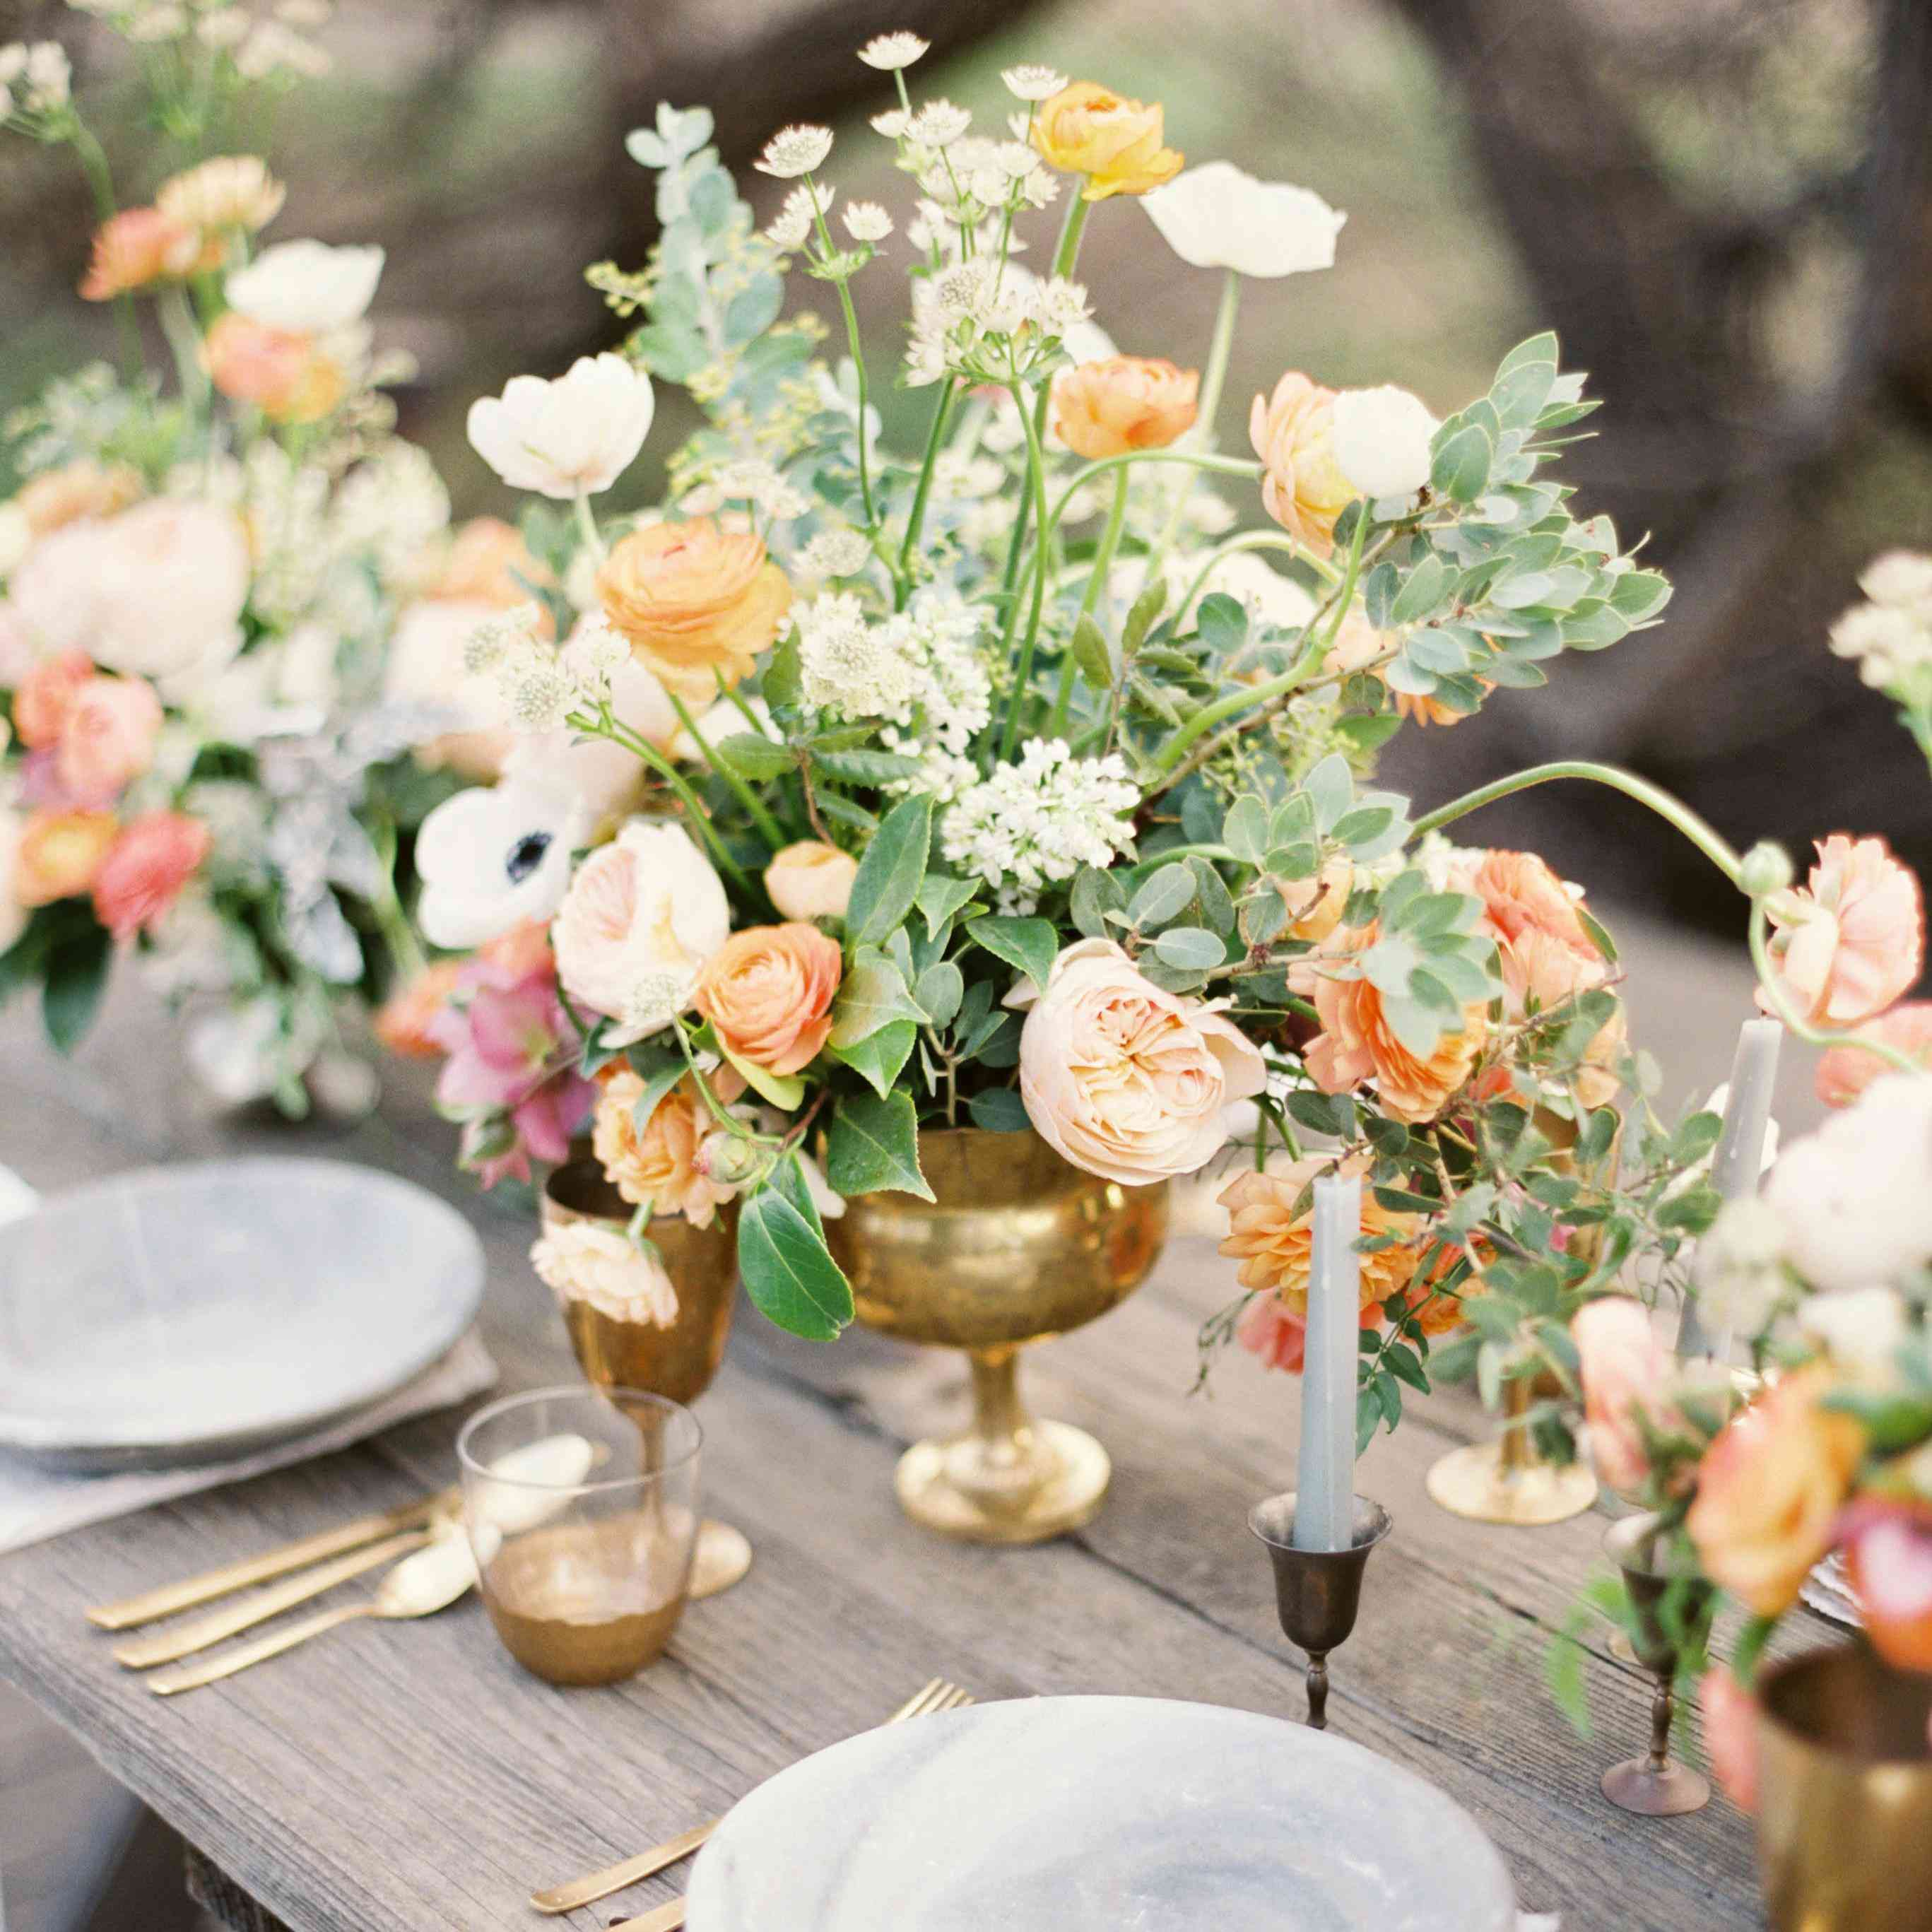 11 Spring Wedding Centerpieces That'll Make You Swoon